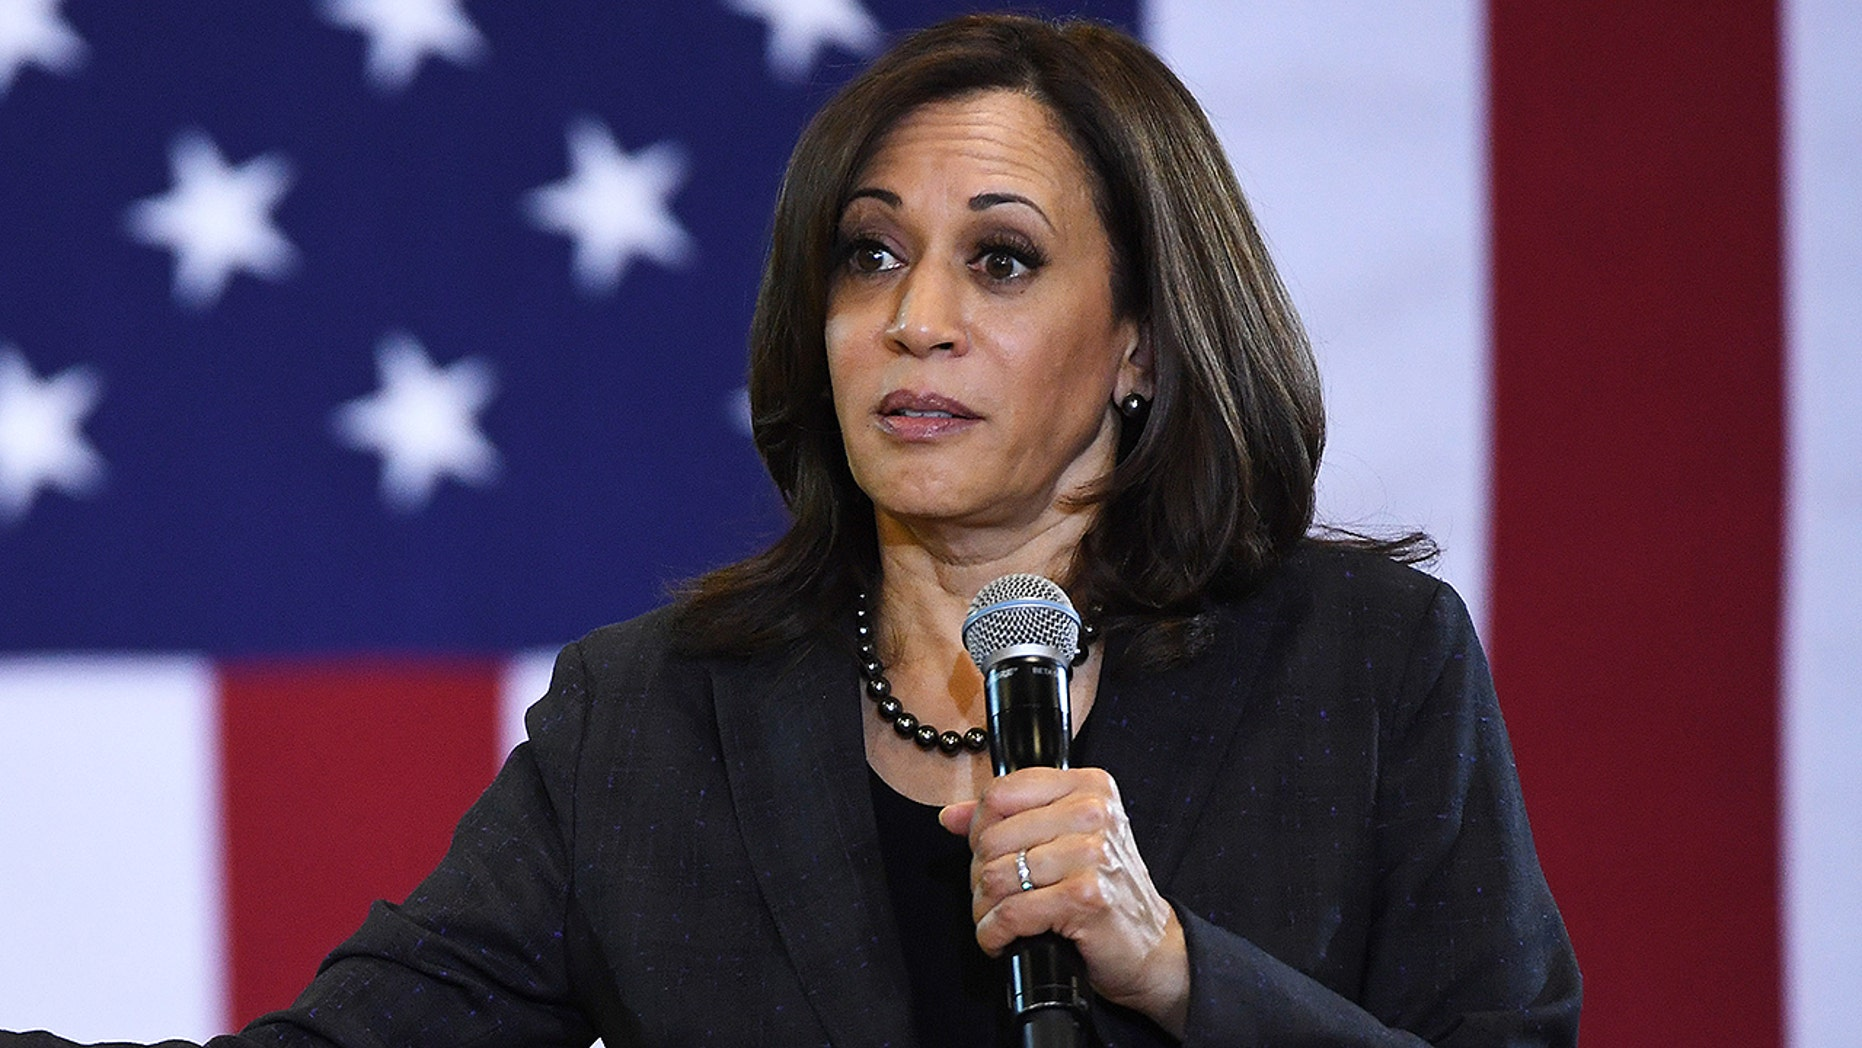 Sen. Kamala Harris (D-Calif.) speaks during a town hall meeting at Canyon Springs High School on March 1, 2019 in North Las Vegas, Nevada. Harris is campaigning for the 2020 Democratic nomination for president.